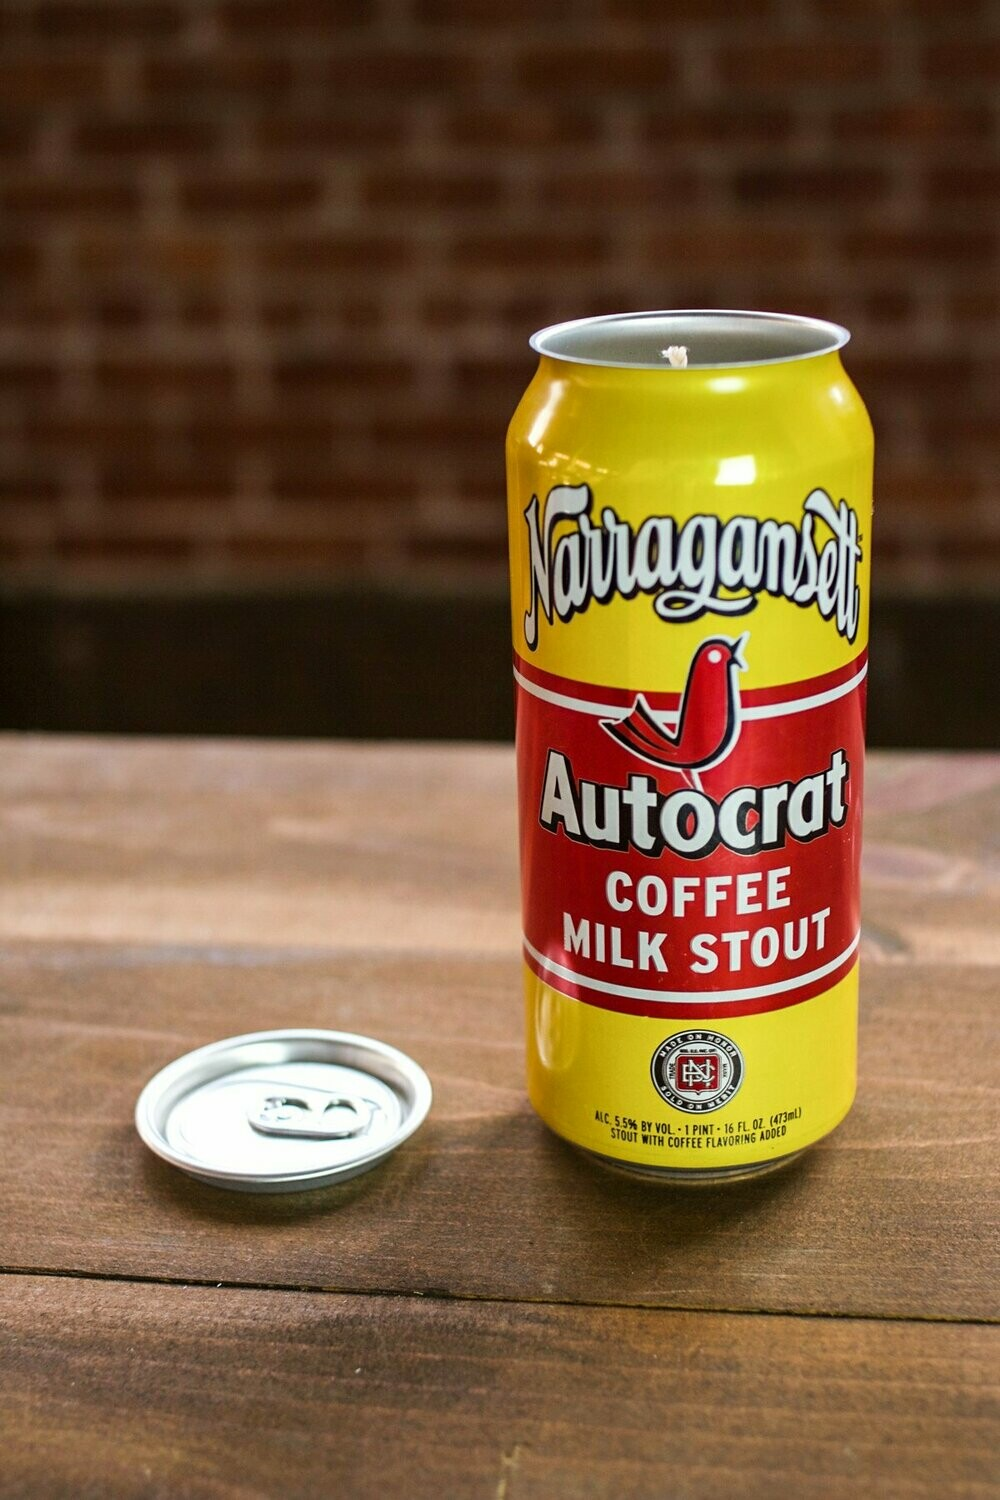 Narragansett - Autocrat Coffee Milk Stout